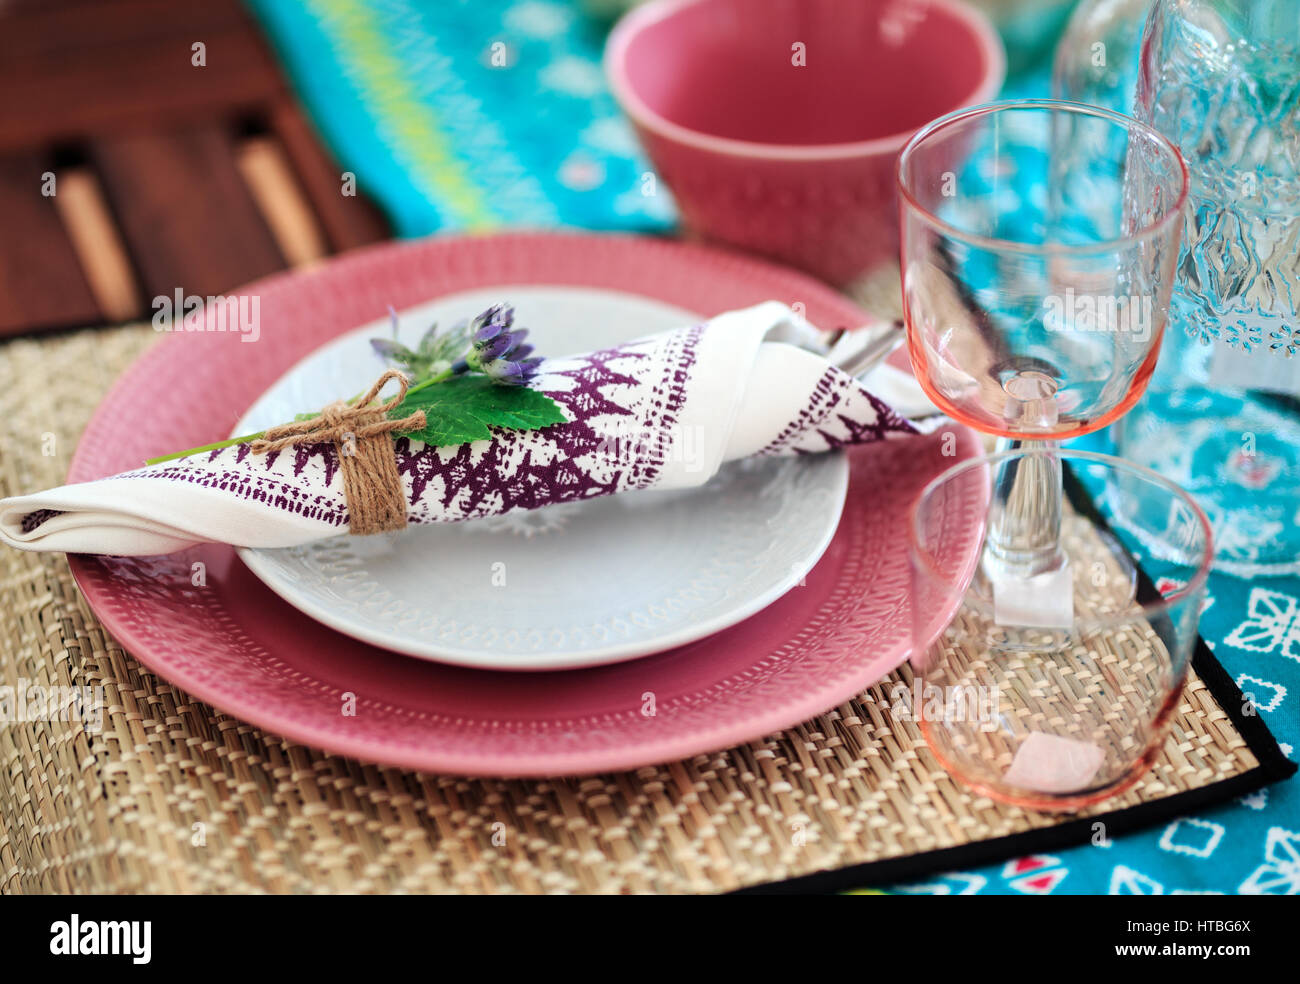 Summer table setting for lunch close up photo. & Summer table setting for lunch close up photo Stock Photo ...